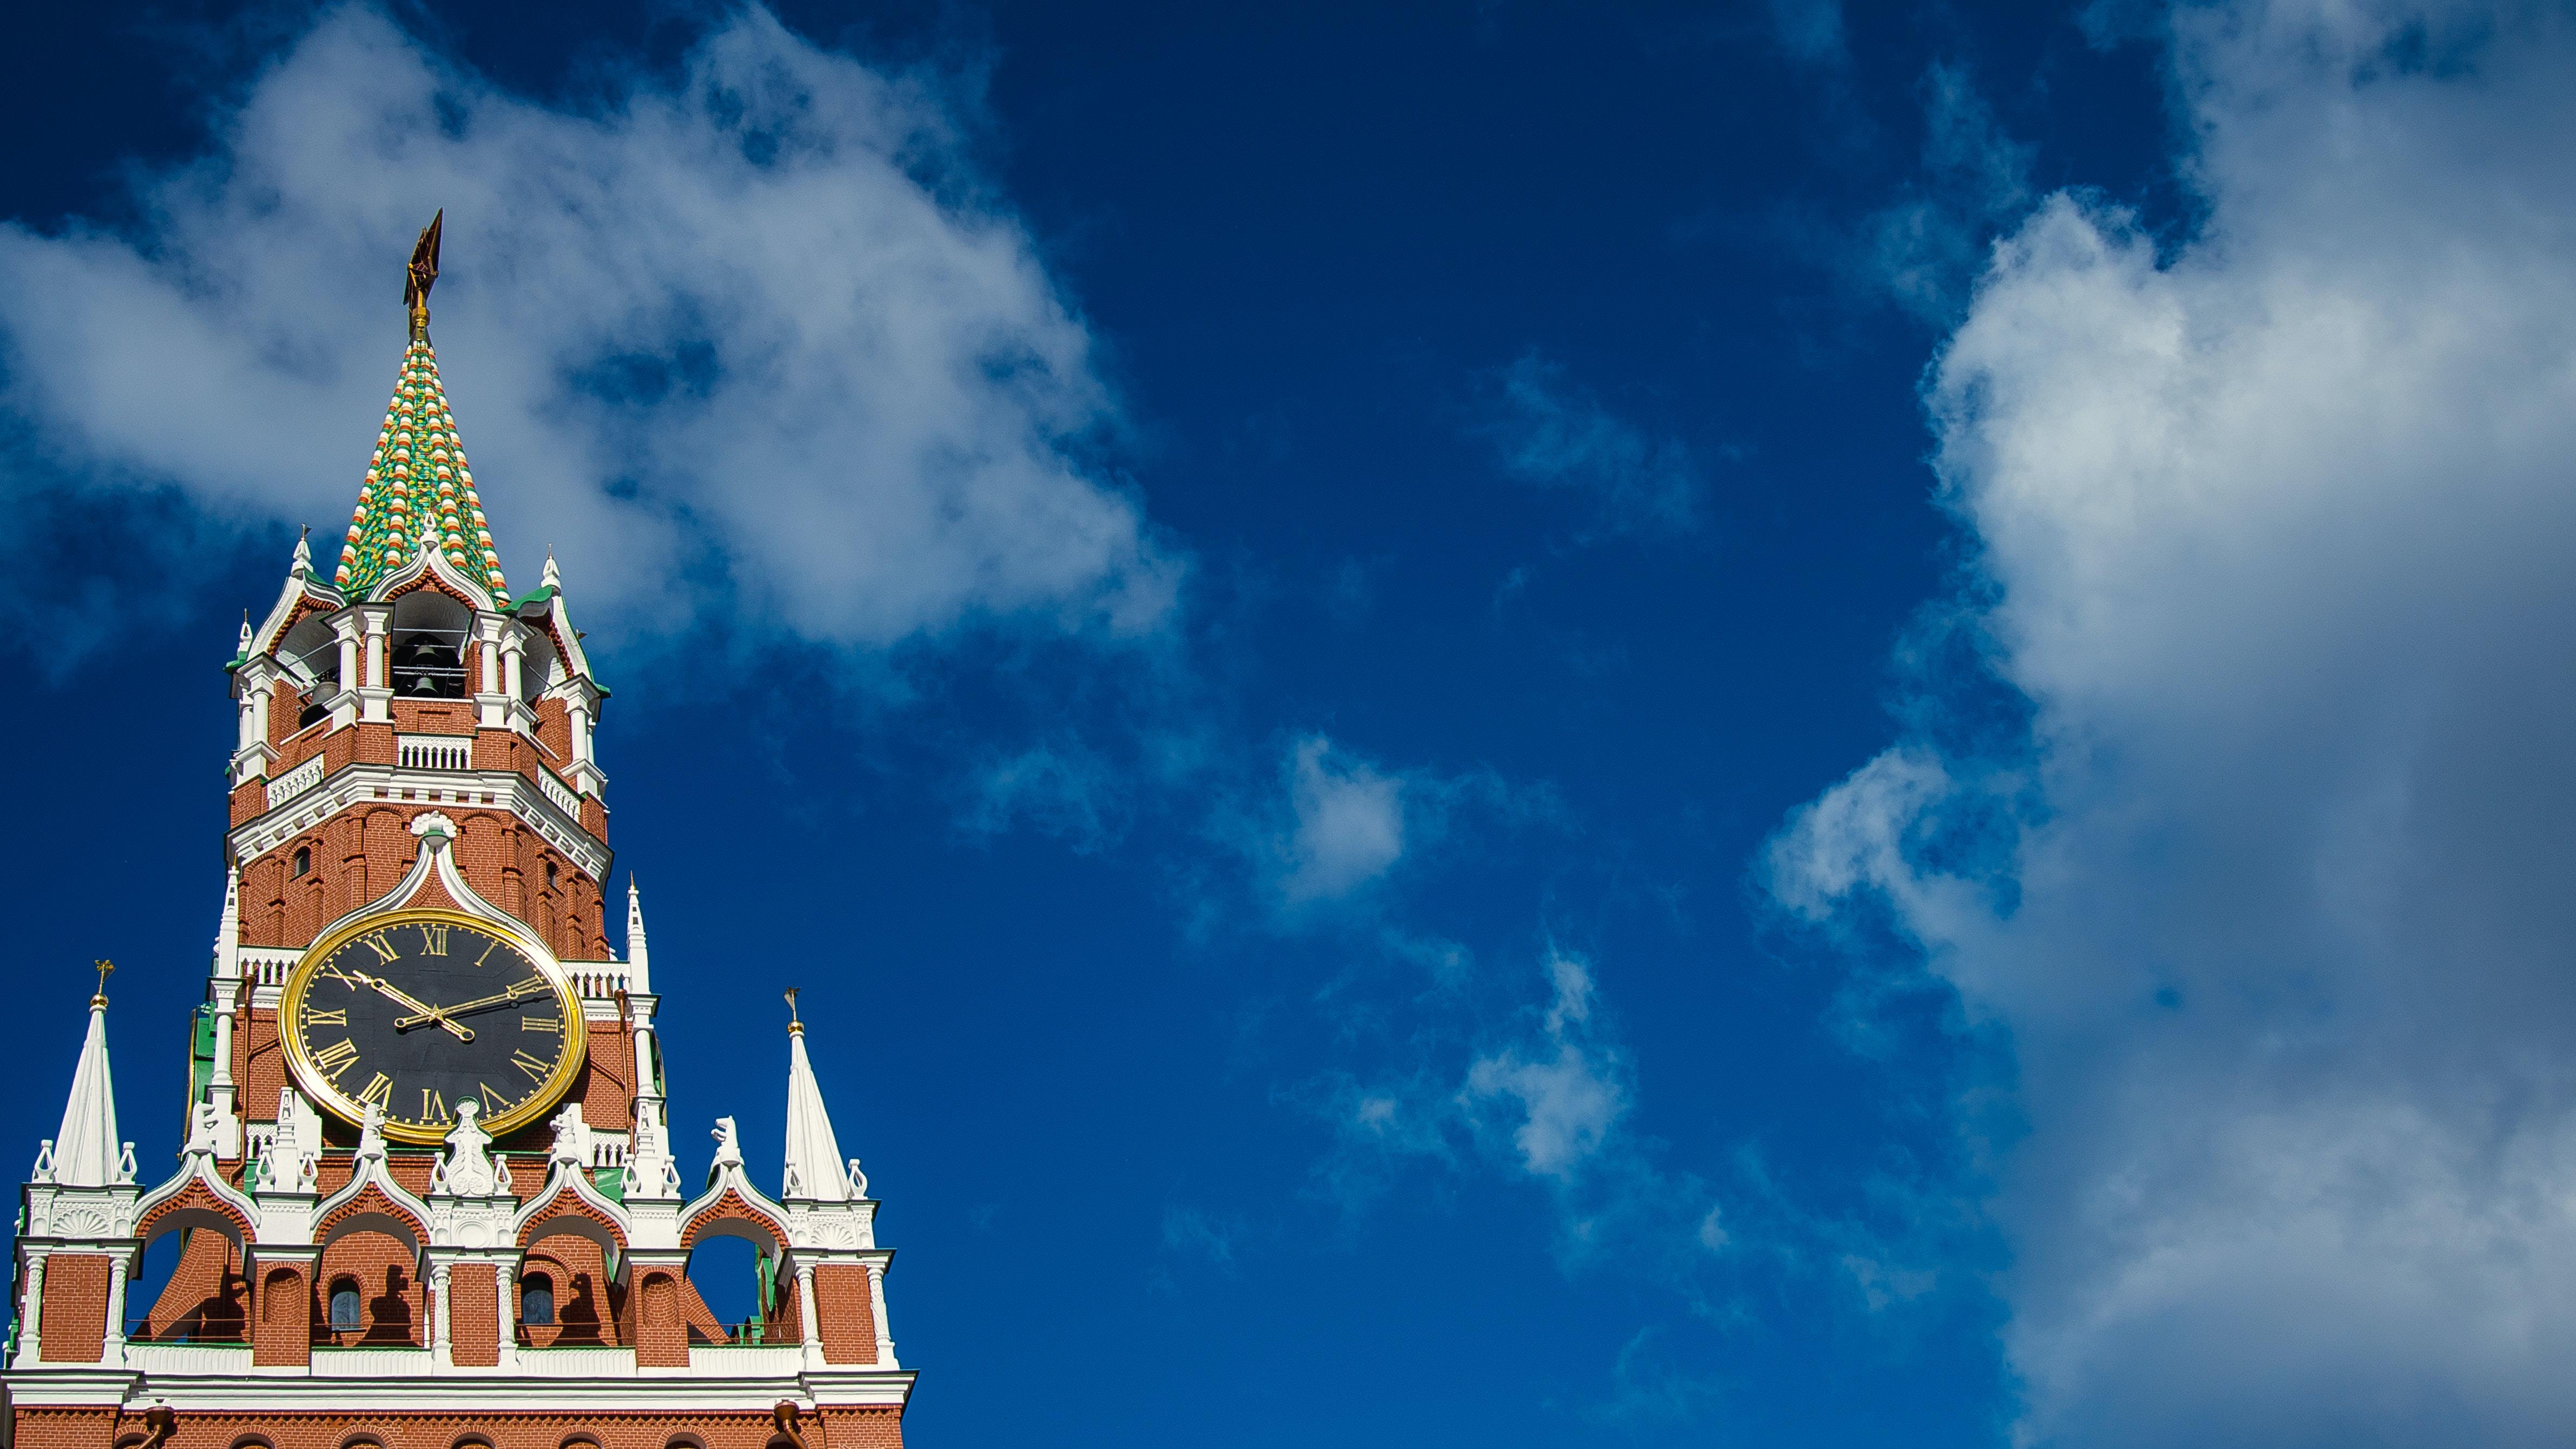 moscow-kremlin-tour-with-tickets-5